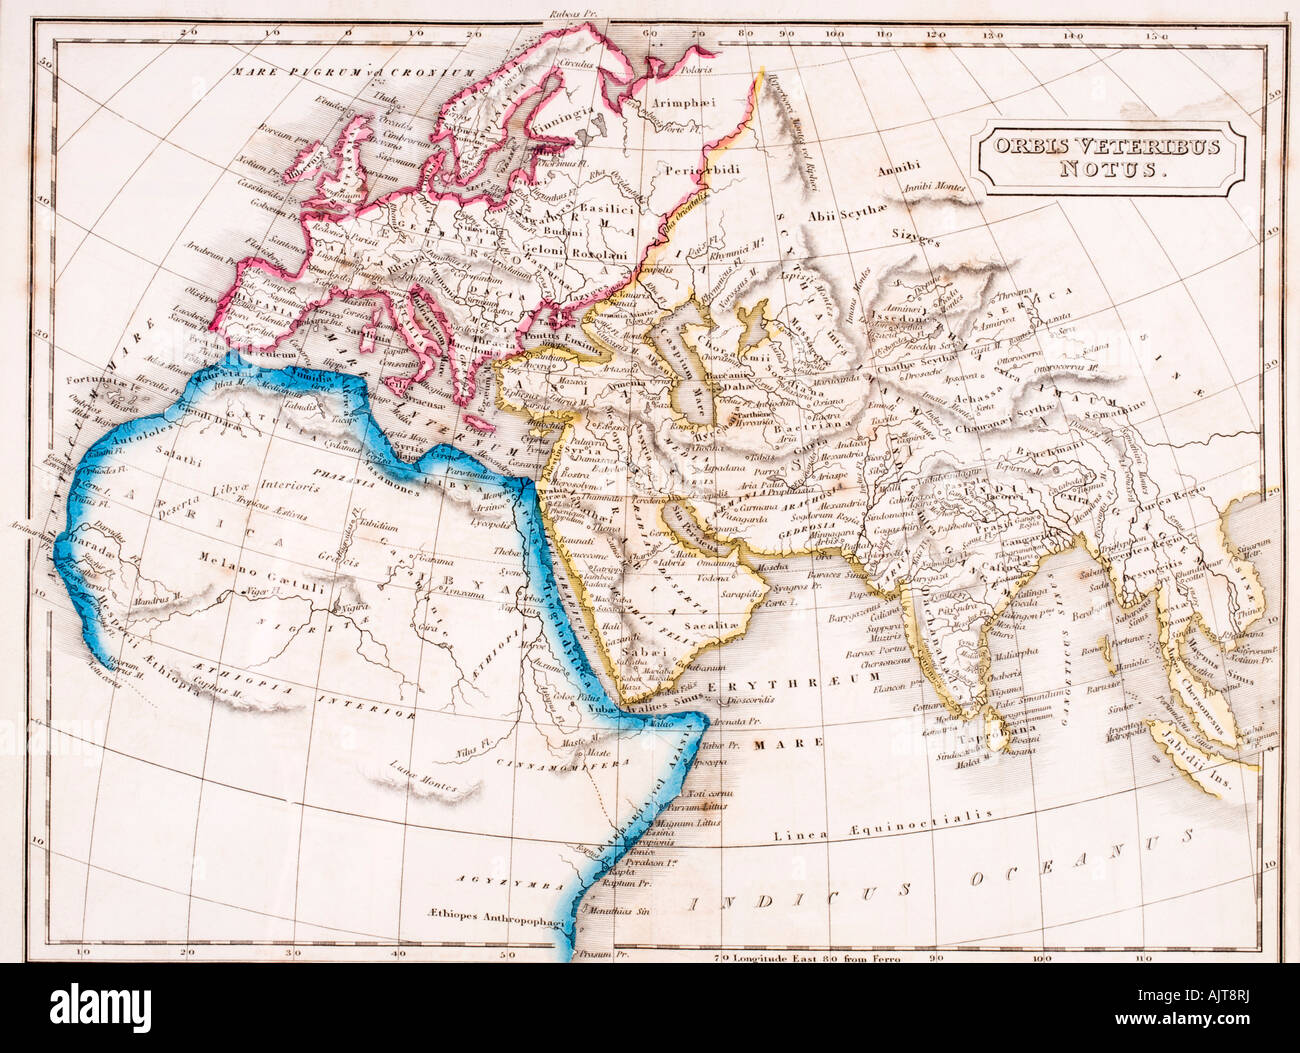 Map of Europe Northern Africa and Western Asia Orbis Veteribus Notus Map Of Western Asia on northern cyprus, blank map of asia, map of middle east, map of southwestern asia, map of eastern europe, map of united kingdom, map of indonesia, map of europe with cities, map of uzbekistan, east asia, map of northwestern asia, map of southeast asia only, southeast asia, western europe, map of east asia, map of united states, south caucasus, north asia, horn of africa, map of ukraine, map of syria, northeast asia, south asia, map of mediterranean basin, map of europe and asia, map of baghdad, map of africa, yemen arab republic, map of turkey, near east, central asia, indian subcontinent, map of near east, arab world,